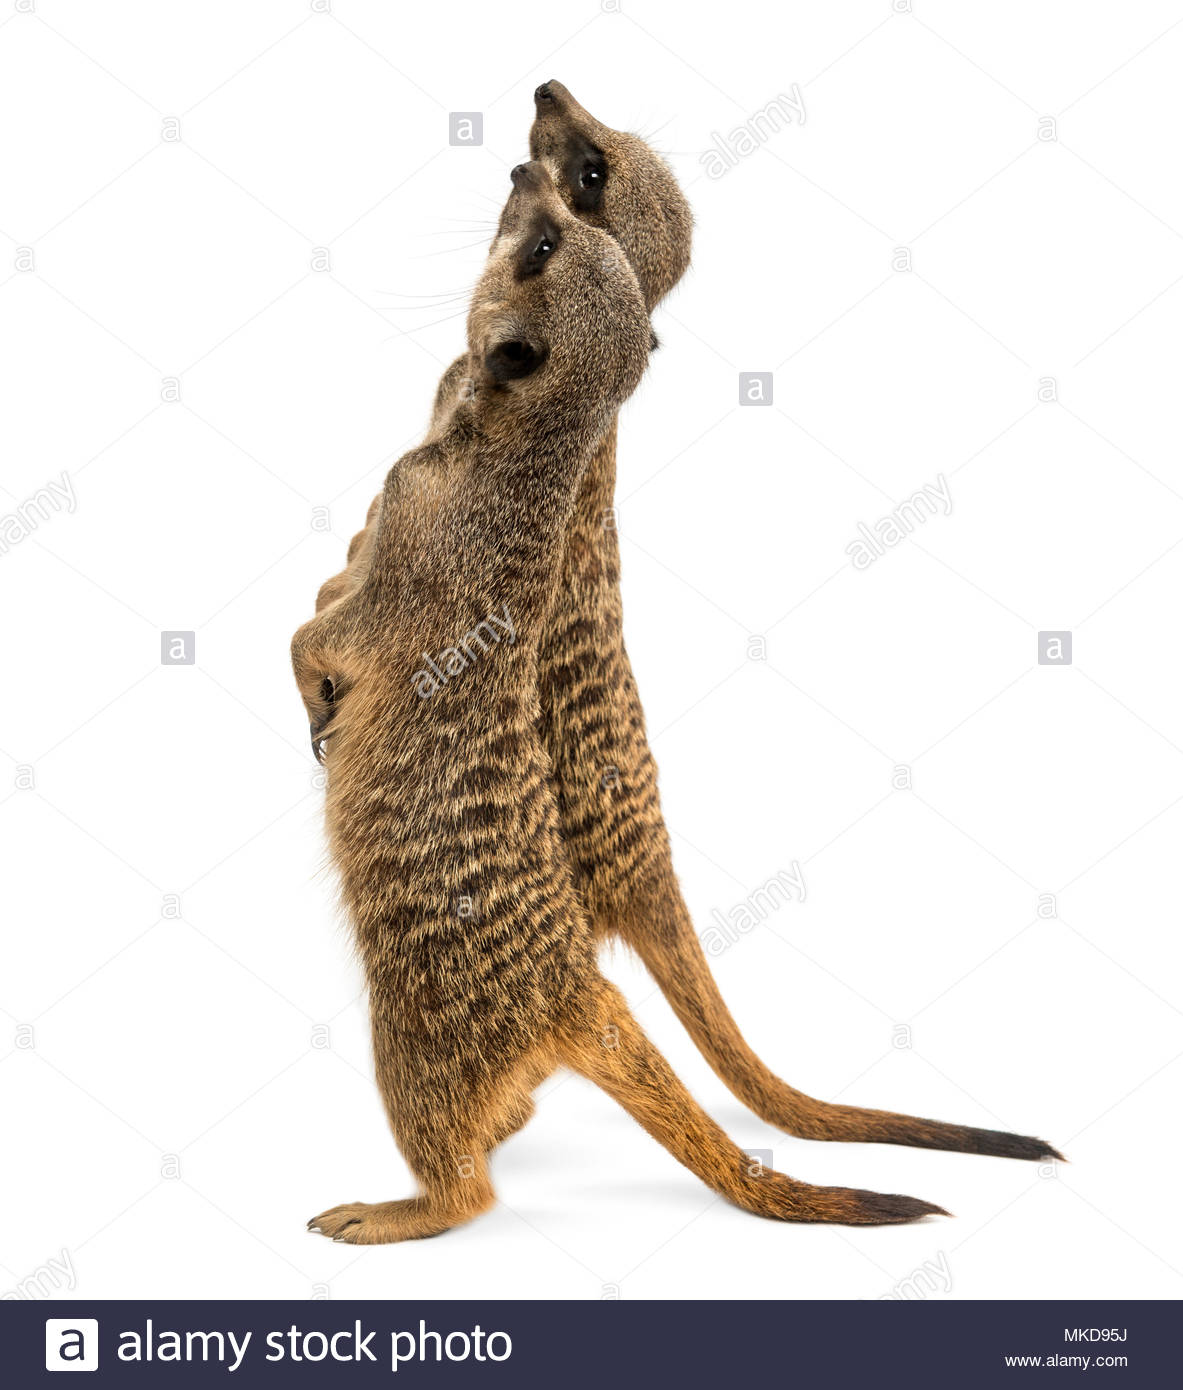 Rear view of two Meerkats standing upright, looking up, (Suricata suricatta), isolated on white Mulhouse Zoological and Botanical Park, France - Stock Image